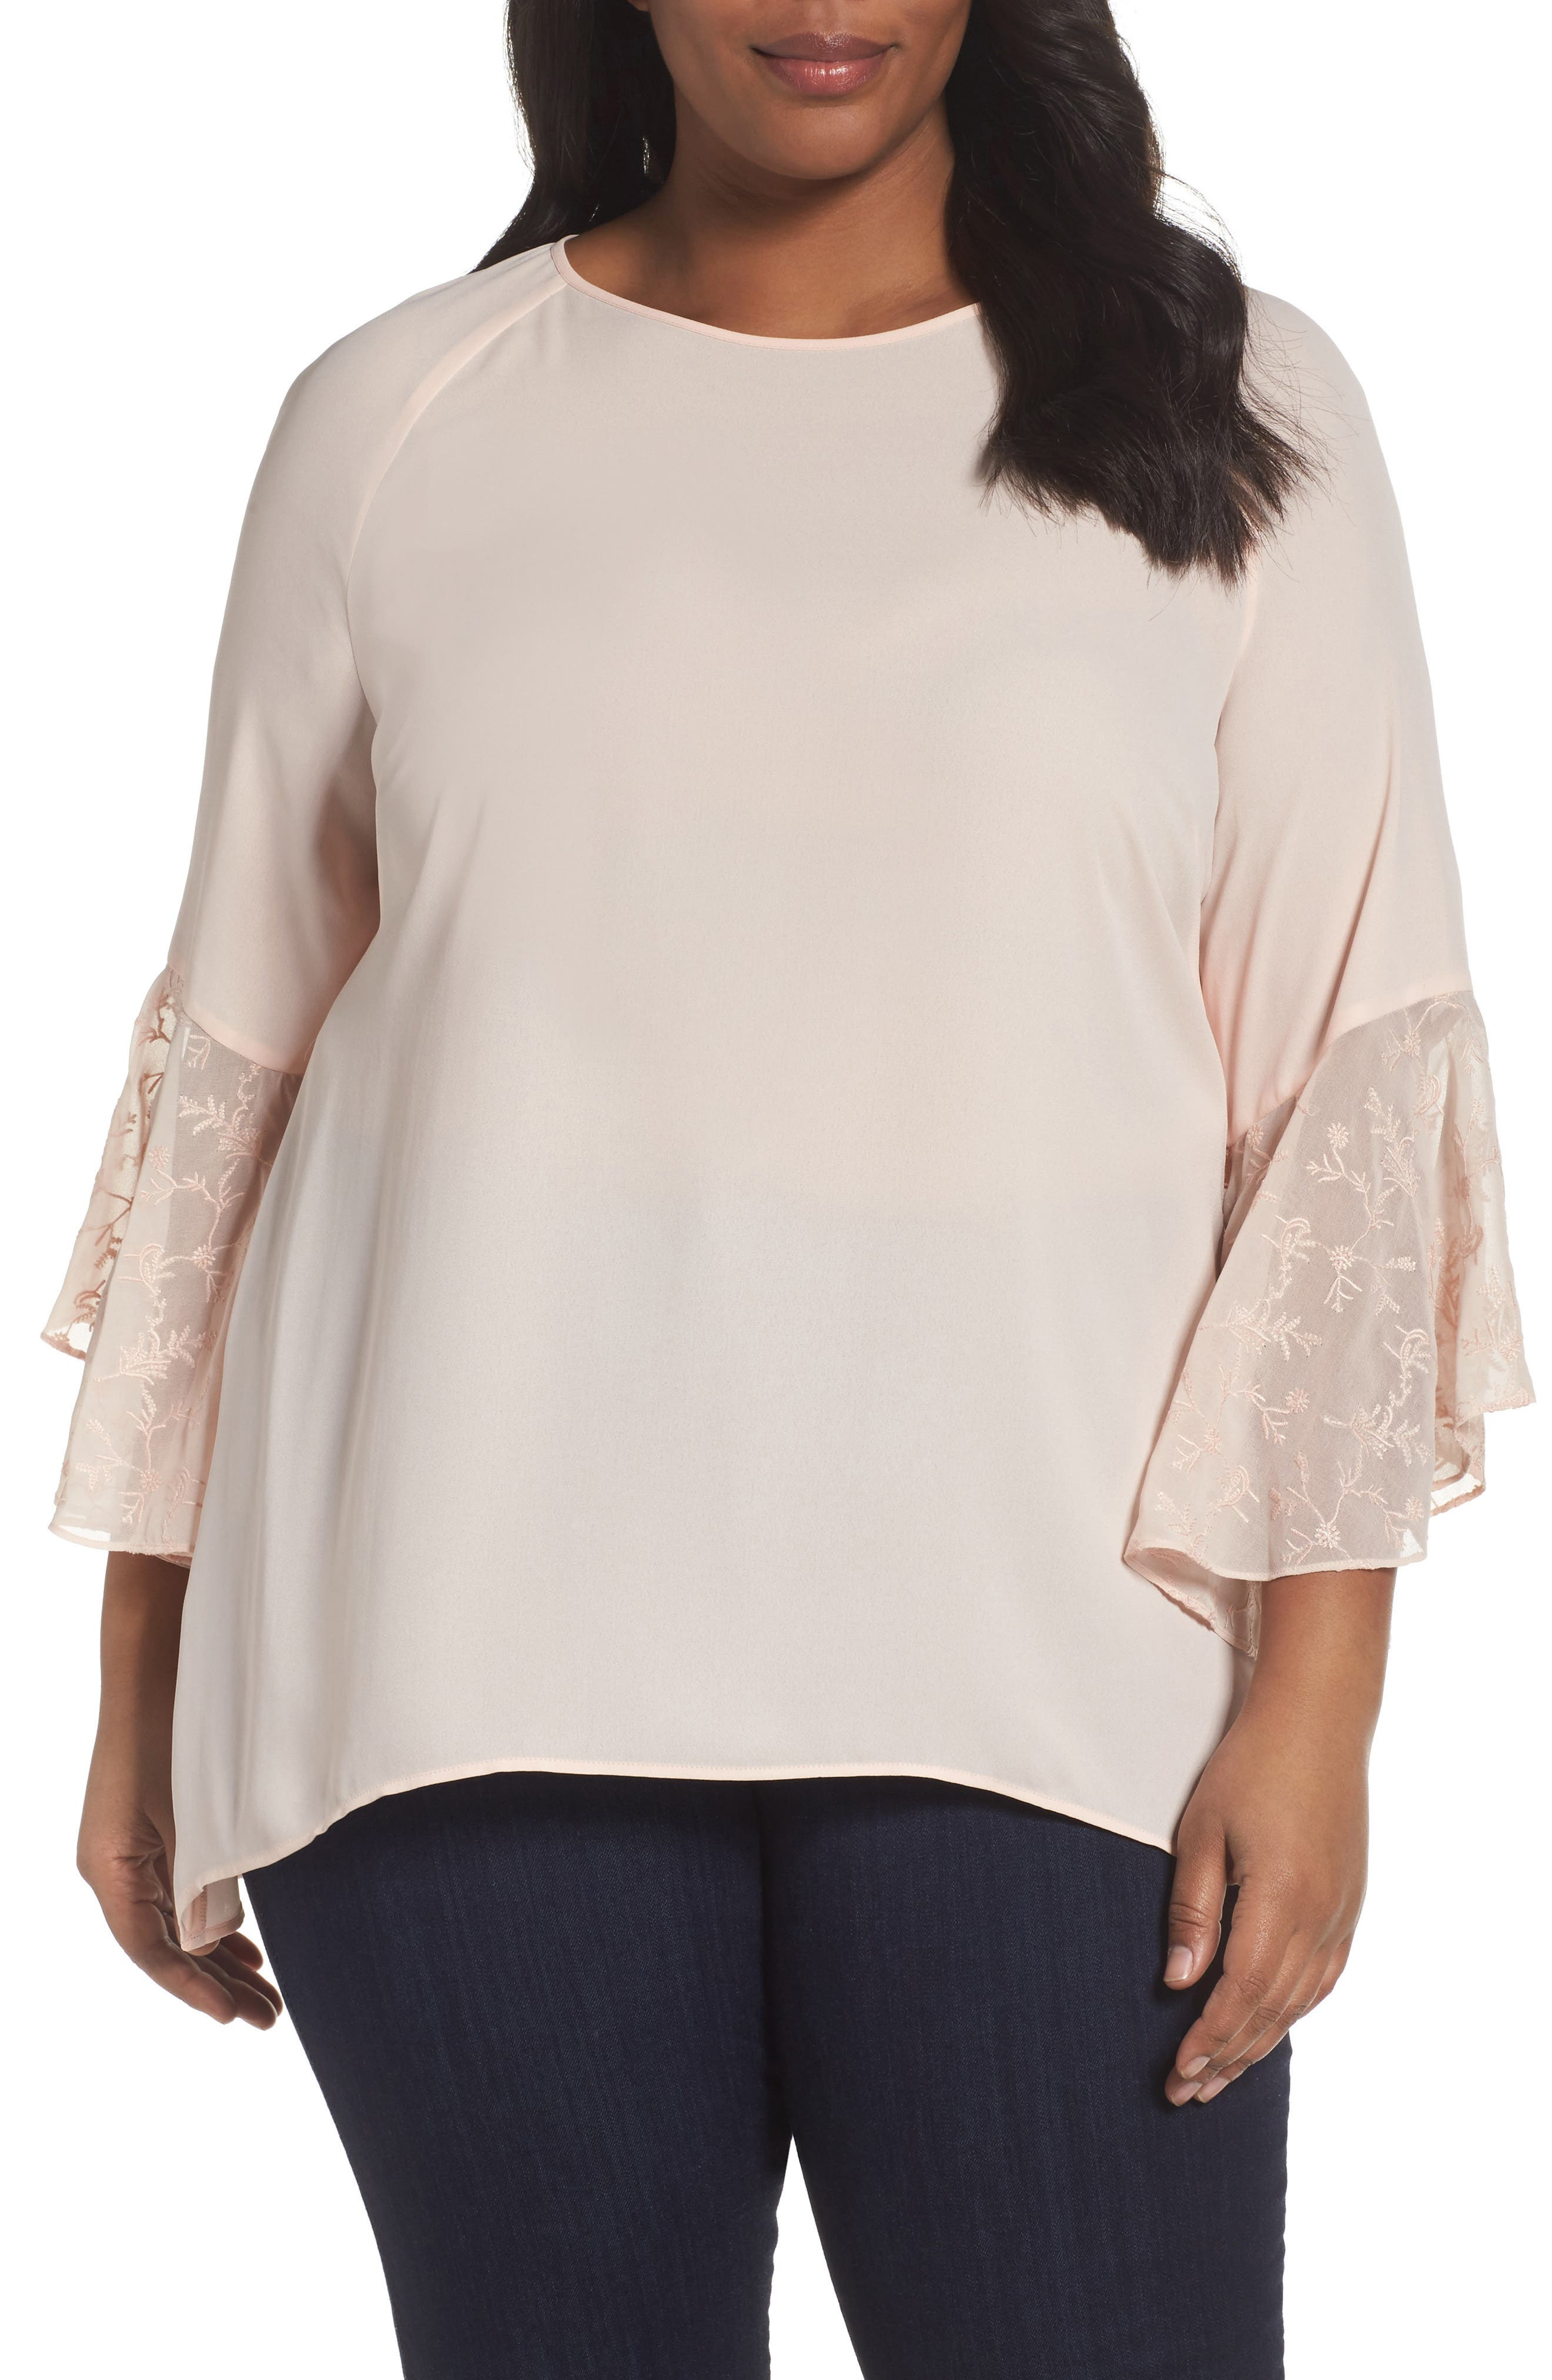 Alternate Image 1 Selected - Sejour Embroidered Bell Sleeve Blouse (Plus Size)